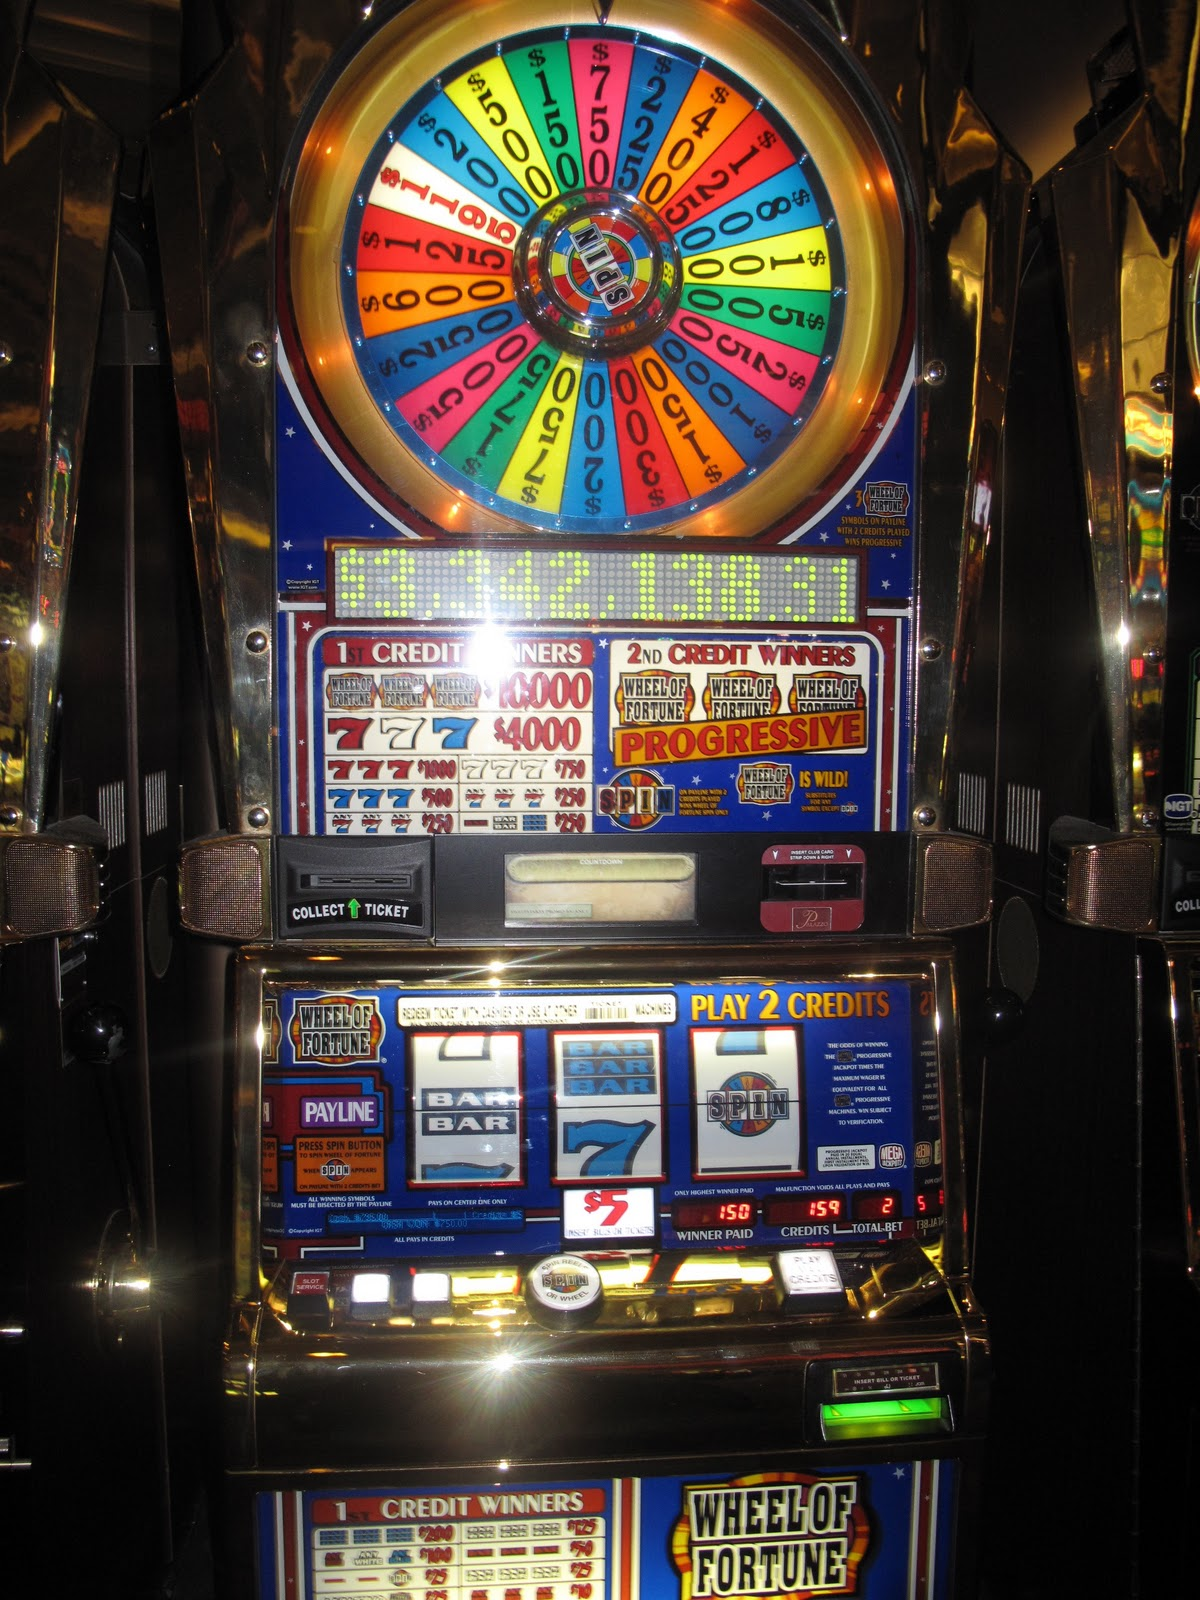 wheel of fortune 25 cent slot machine payouts by casino